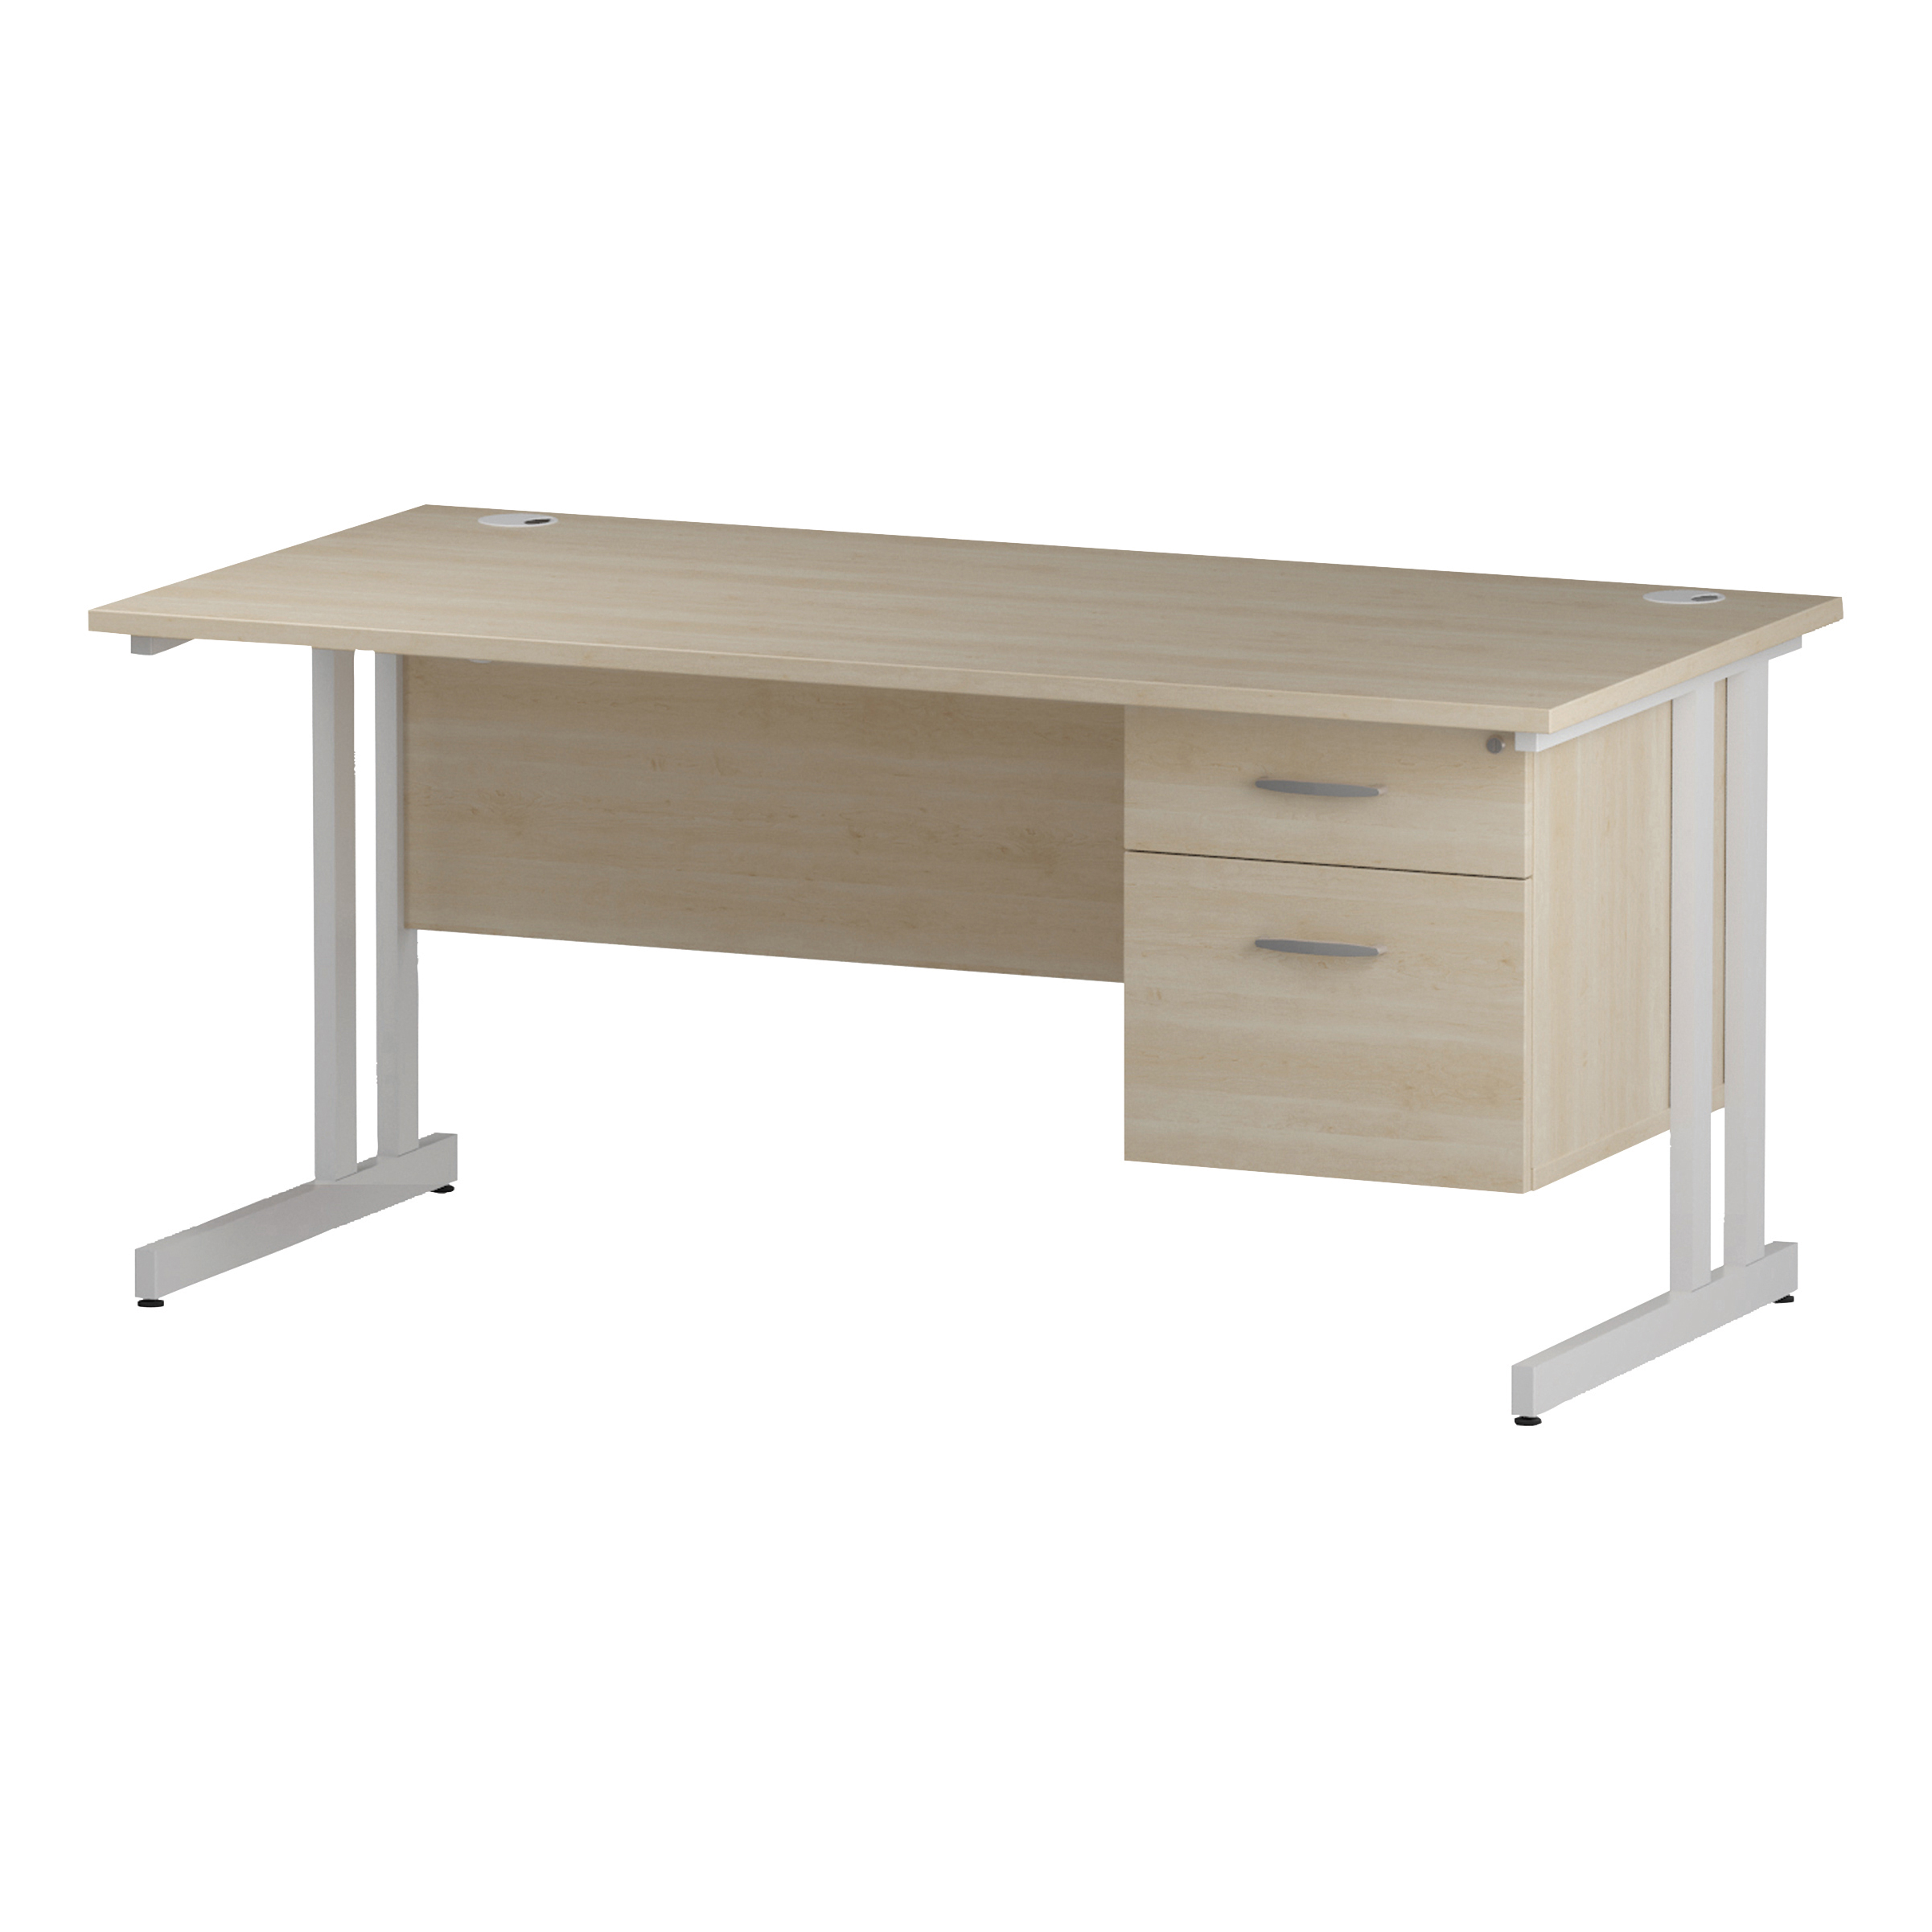 Trexus Rectangular Desk White Cantilever Leg 1600x800mm Fixed Pedestal 2 Drawers Maple Ref I002437